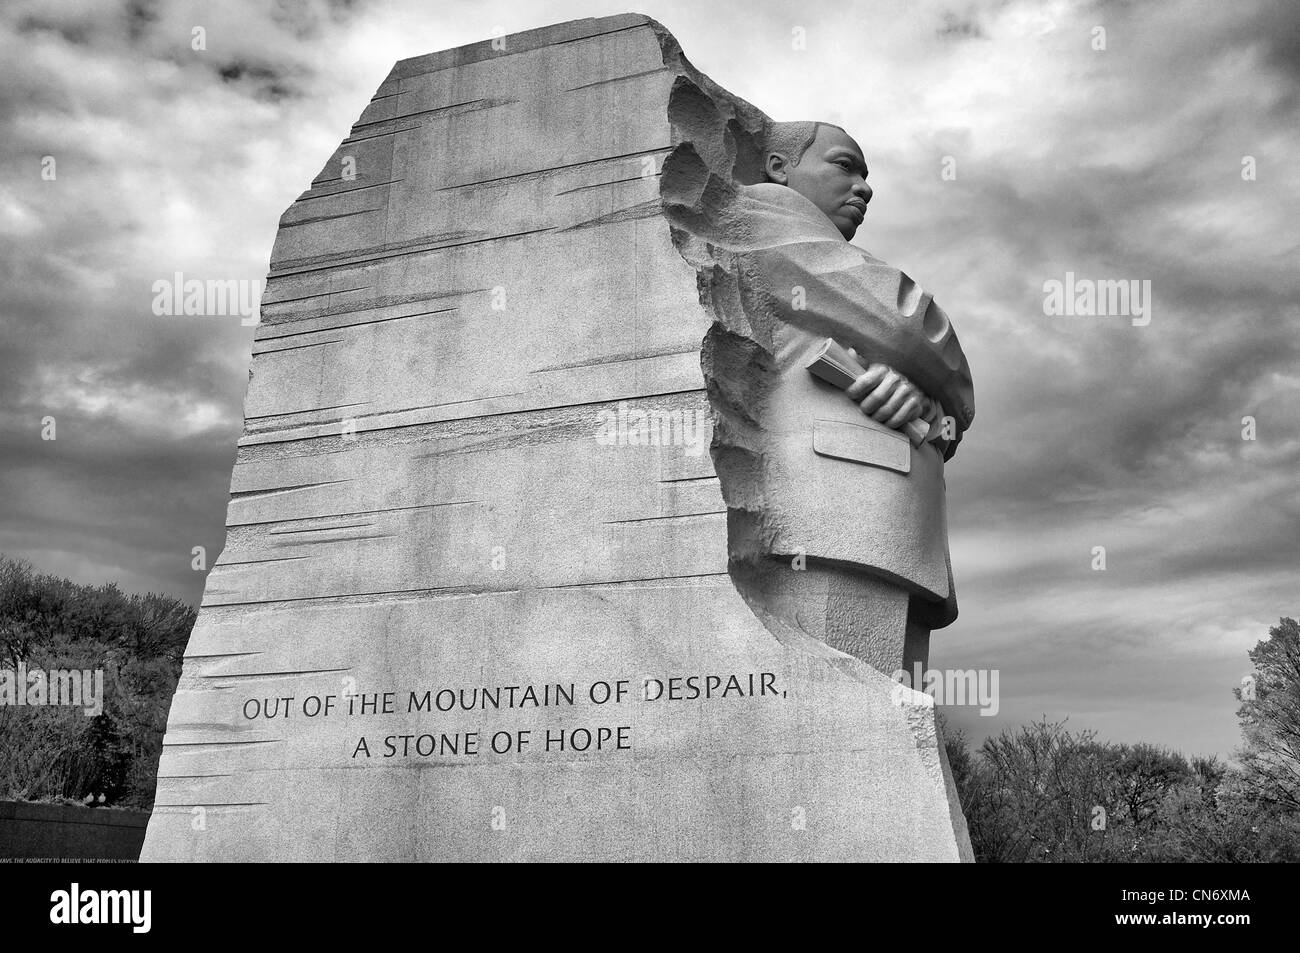 Martin luther king jr memorial in washington dc in black and white